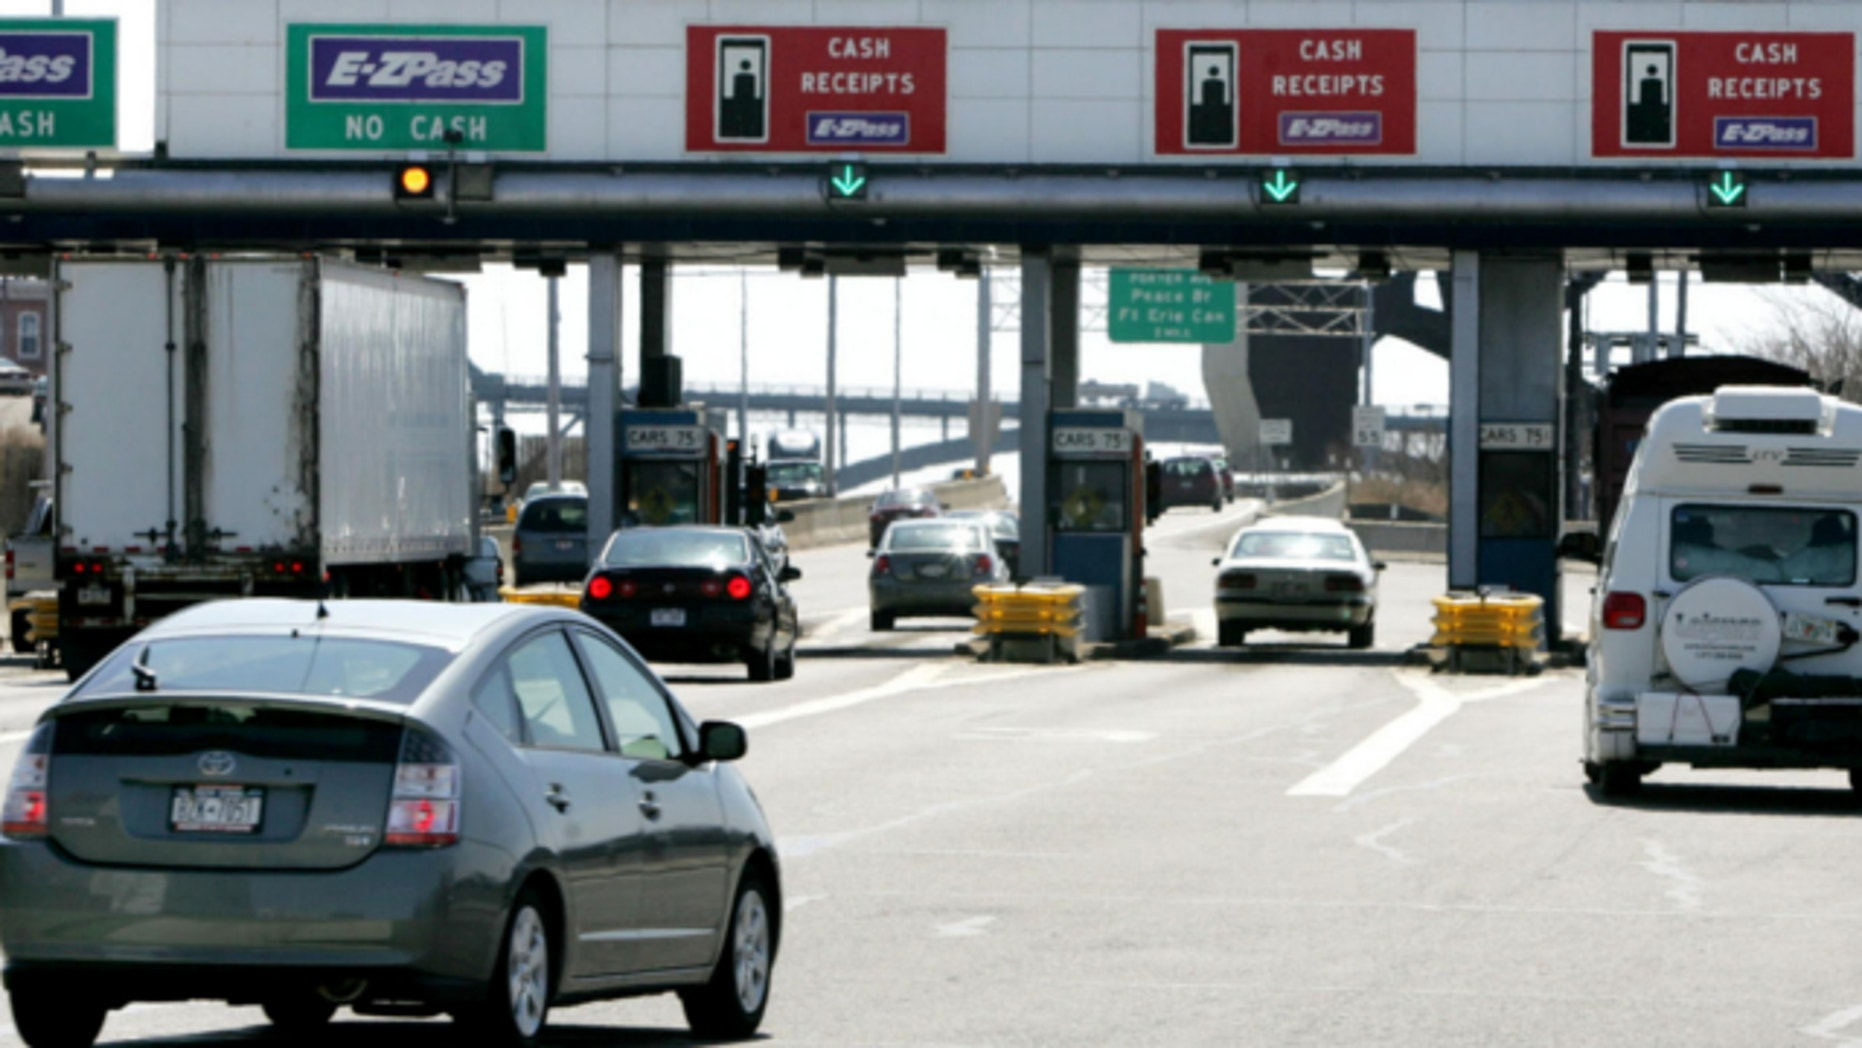 April 10, 2006: Motorists pass through a New York Thuway Authority toll booth, Buffalo, New York.